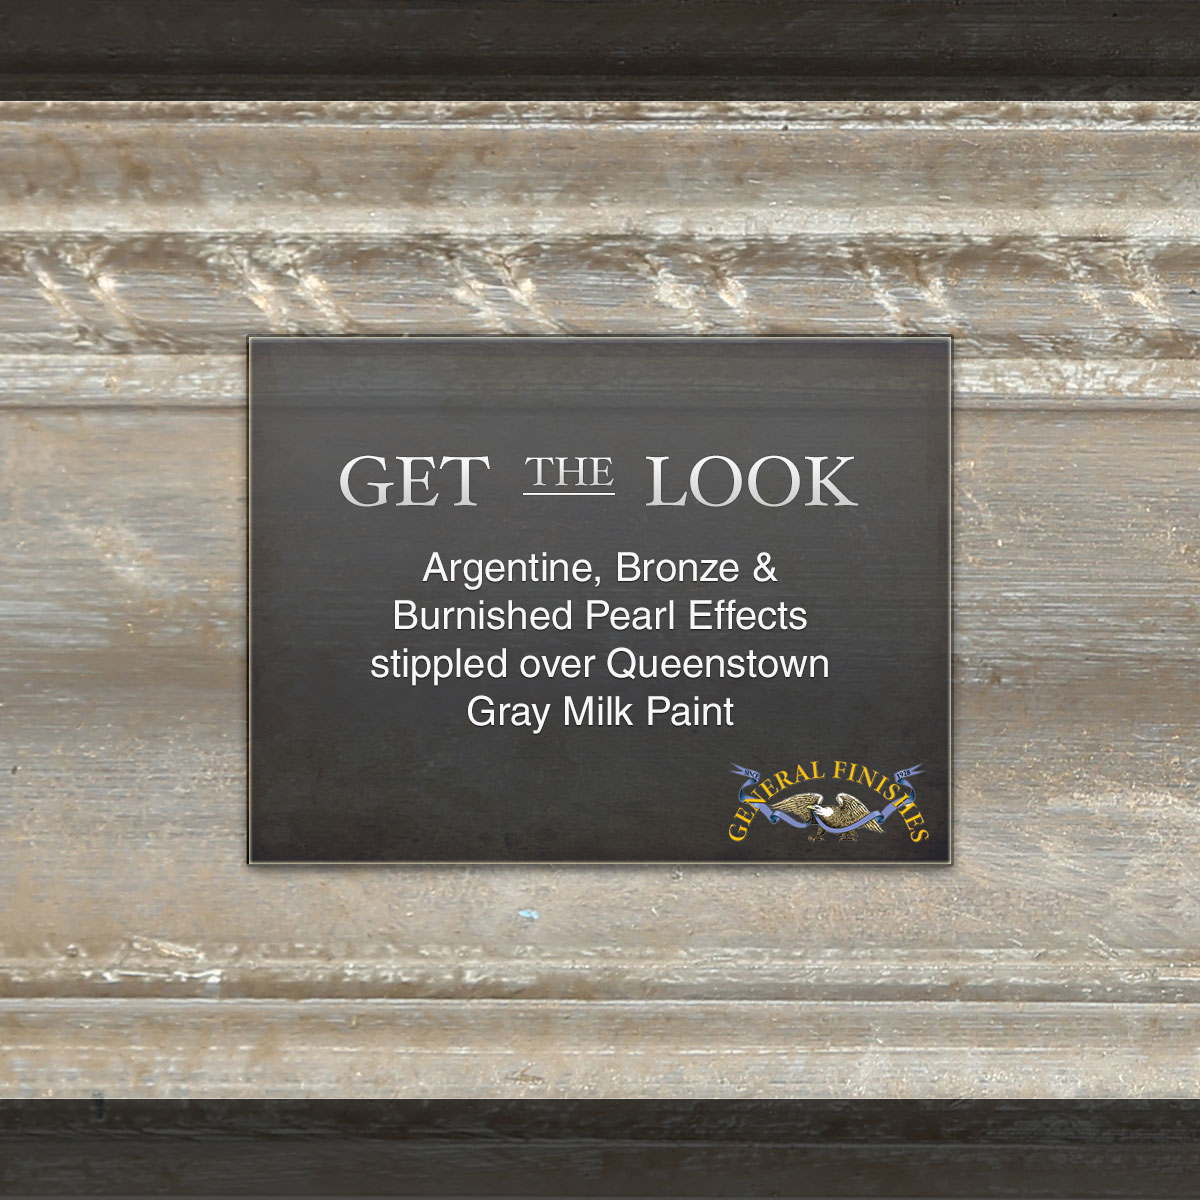 Pearl Effects General Finishes Fuse Box 1920 Get The Look Argentine Bronze Burnished Over Queenstown Gray Milk Paint